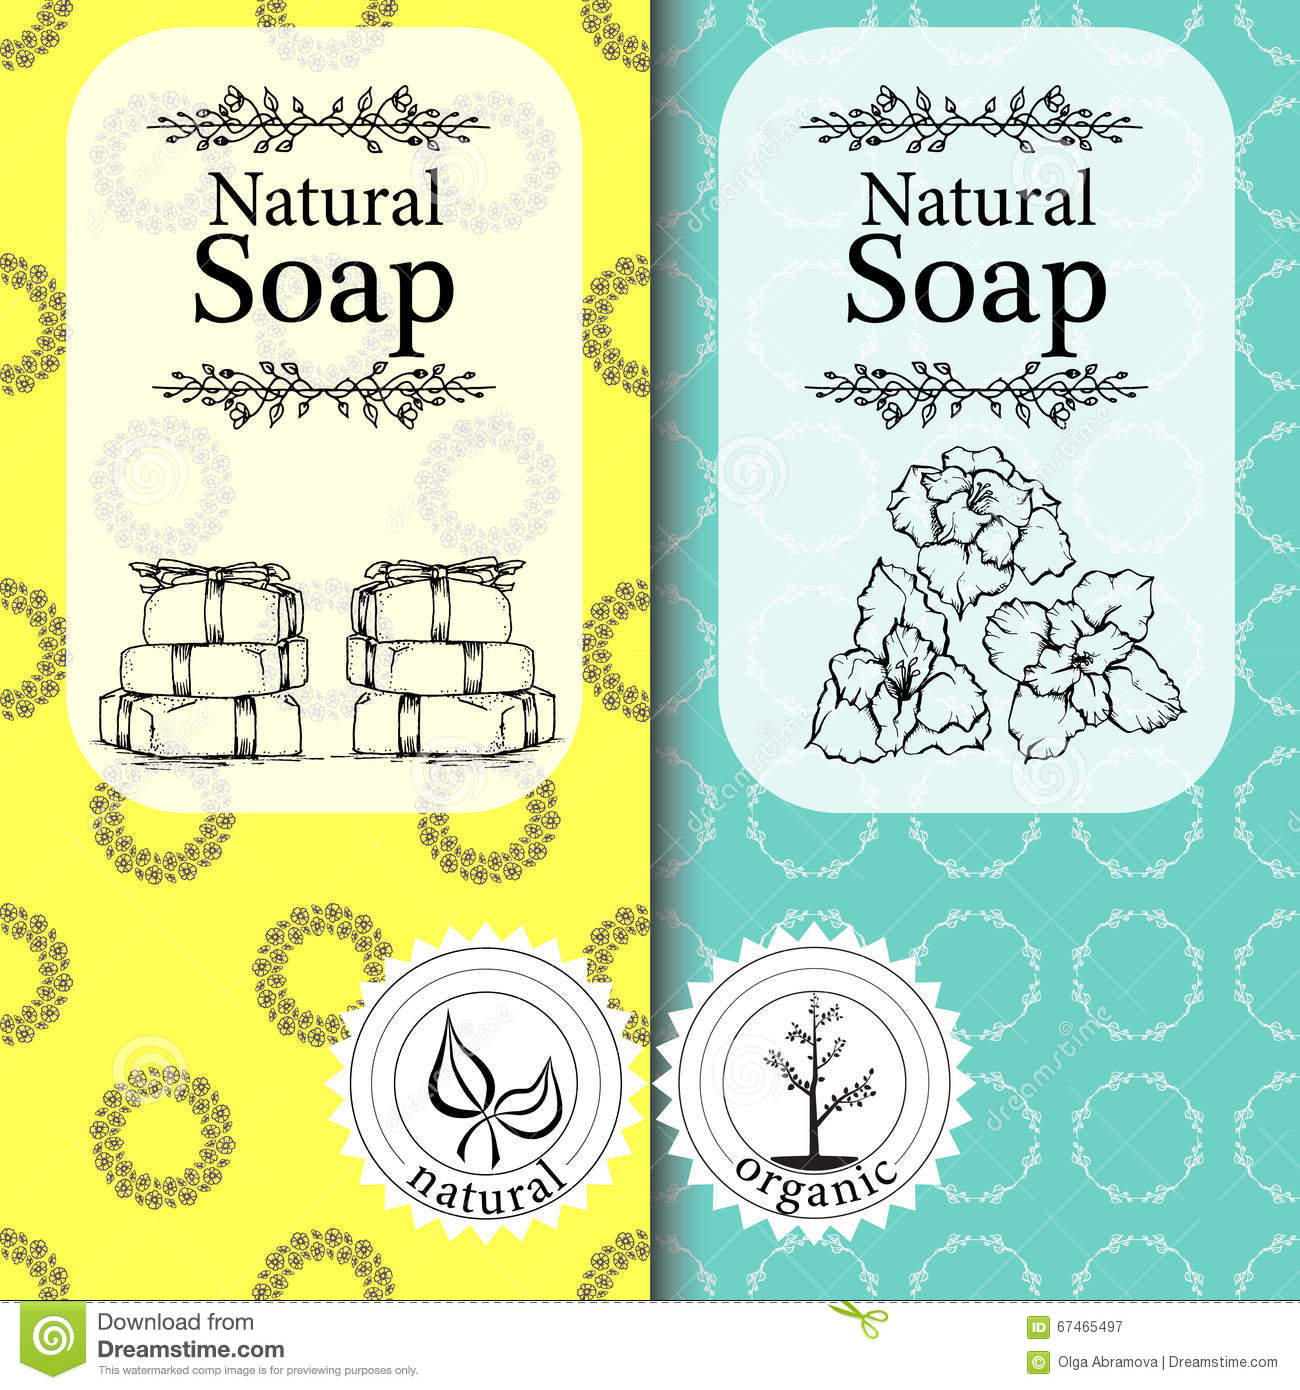 soap label template - Ideal.vistalist.co